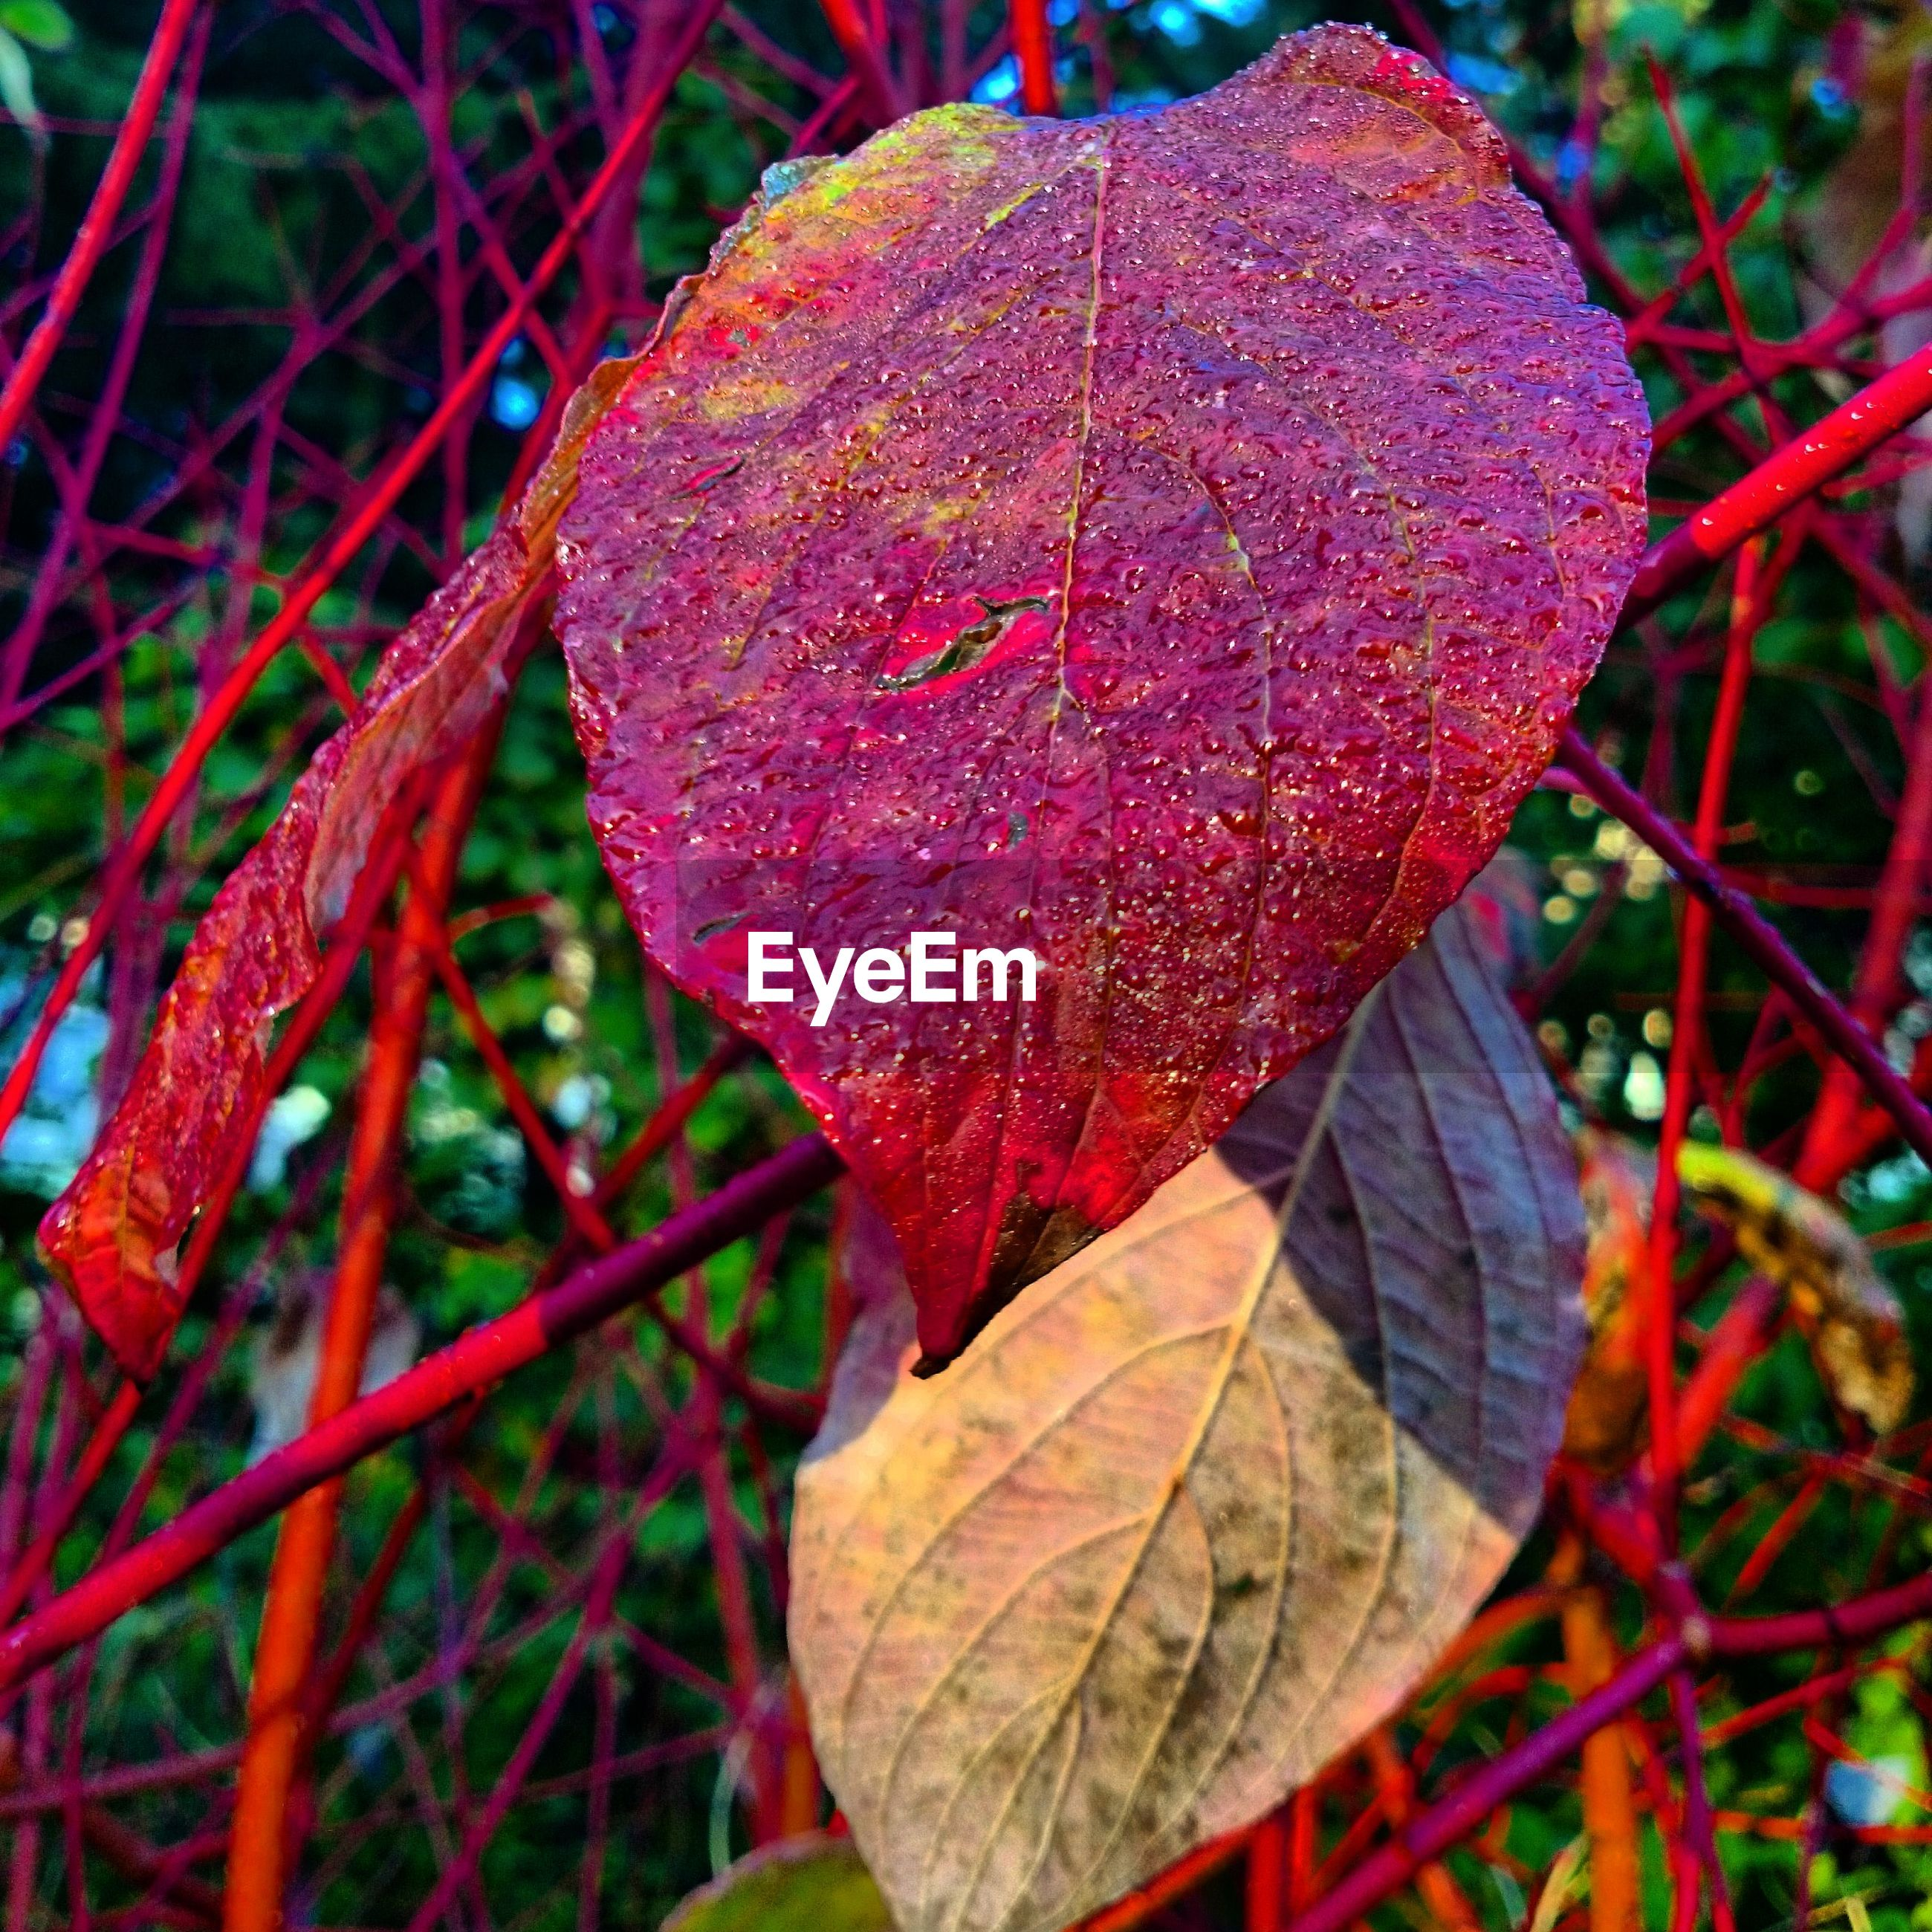 leaf, close-up, red, focus on foreground, growth, nature, autumn, season, change, beauty in nature, leaf vein, tranquility, plant, day, forest, fragility, outdoors, fungus, natural pattern, no people